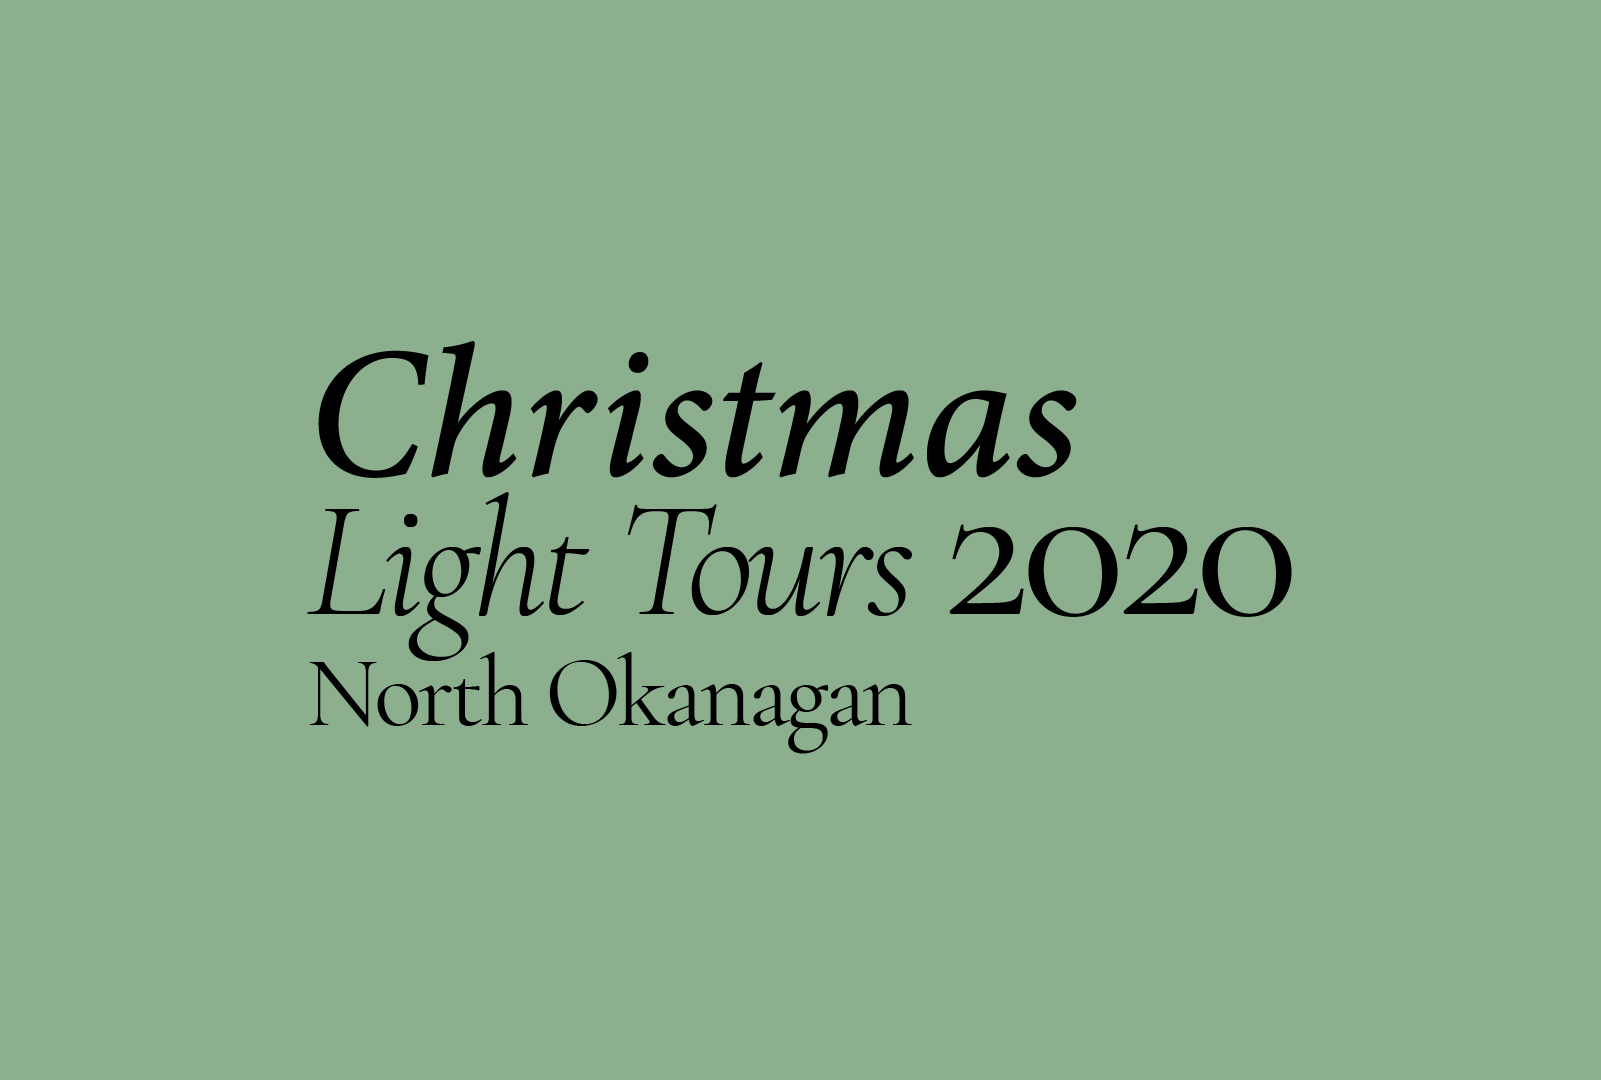 Christmas Light Tours 2020 (North Okanagan)